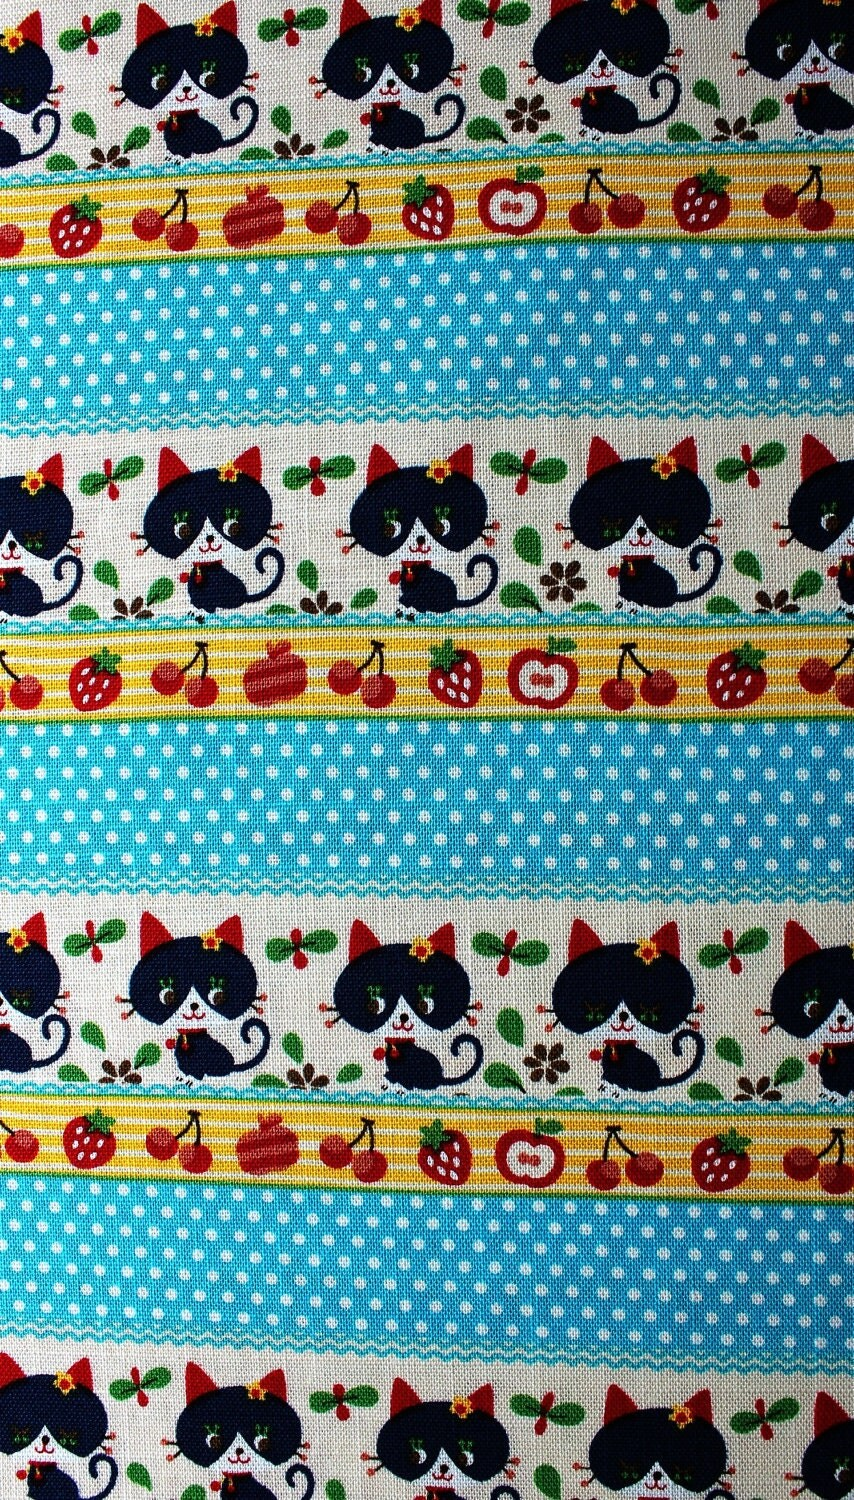 Retro Cat - Kokka Japanese Fabric